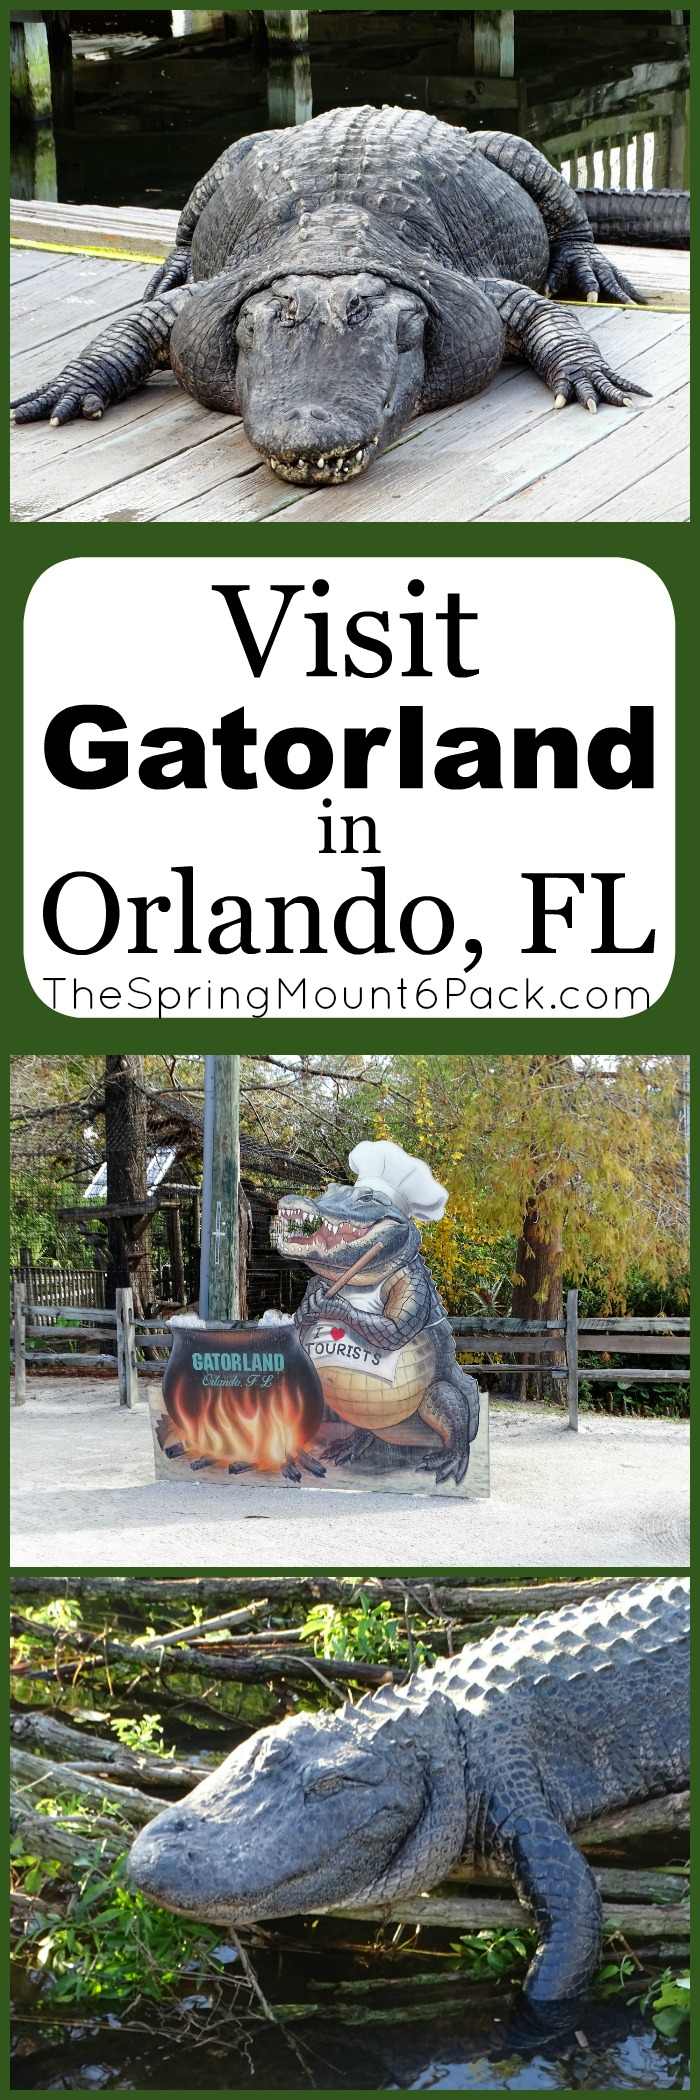 Visiting Orlando Florida and want something to do besides Disney? Gatorland is an alligator paradise. With 110 acres, this animal refuge is a fun packed day.